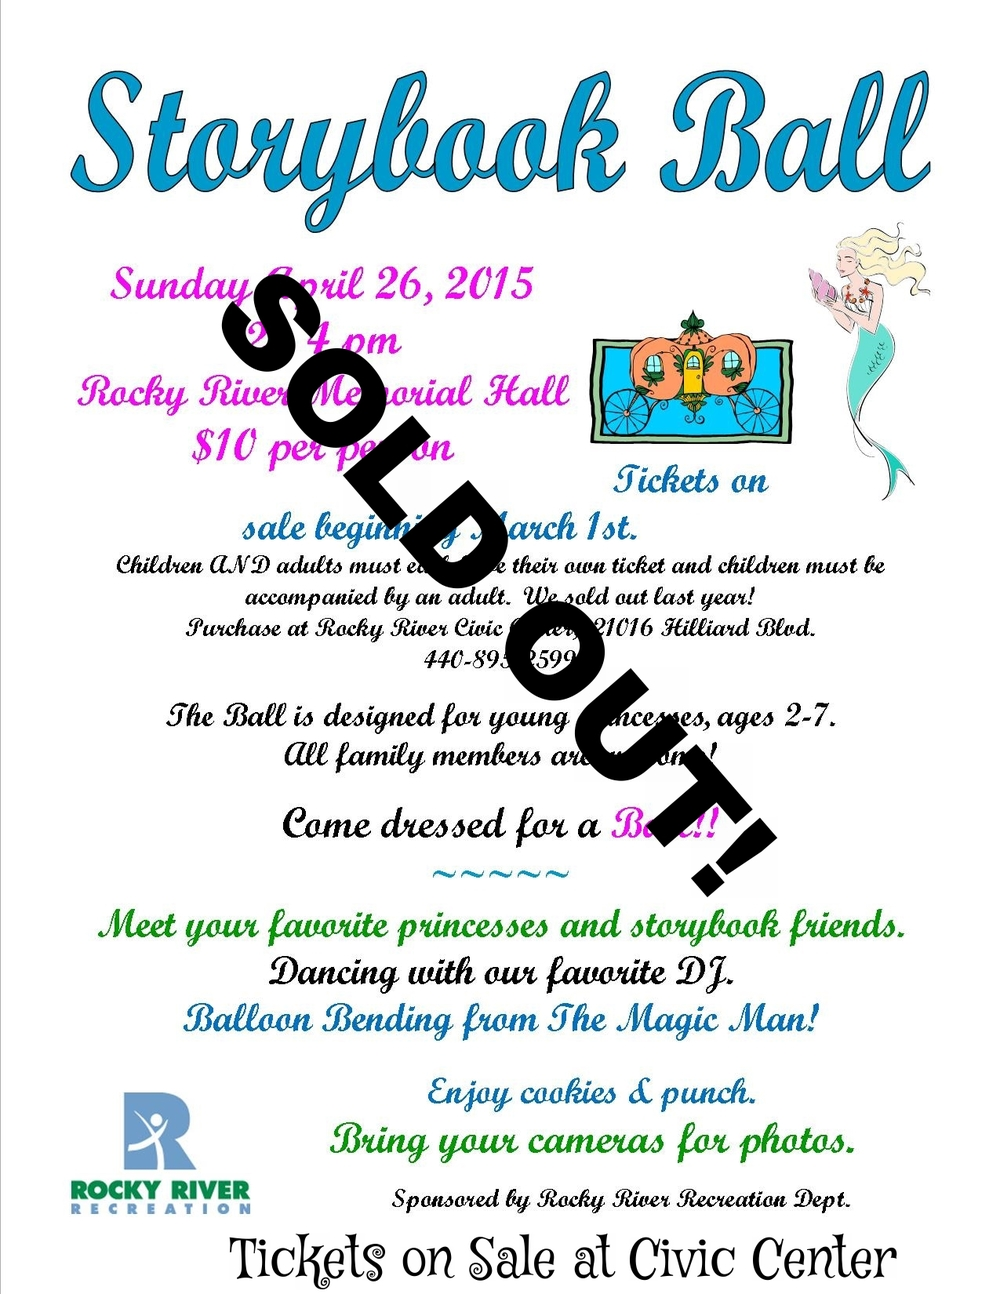 Tickets on Sale for STORY BOOK BALL!